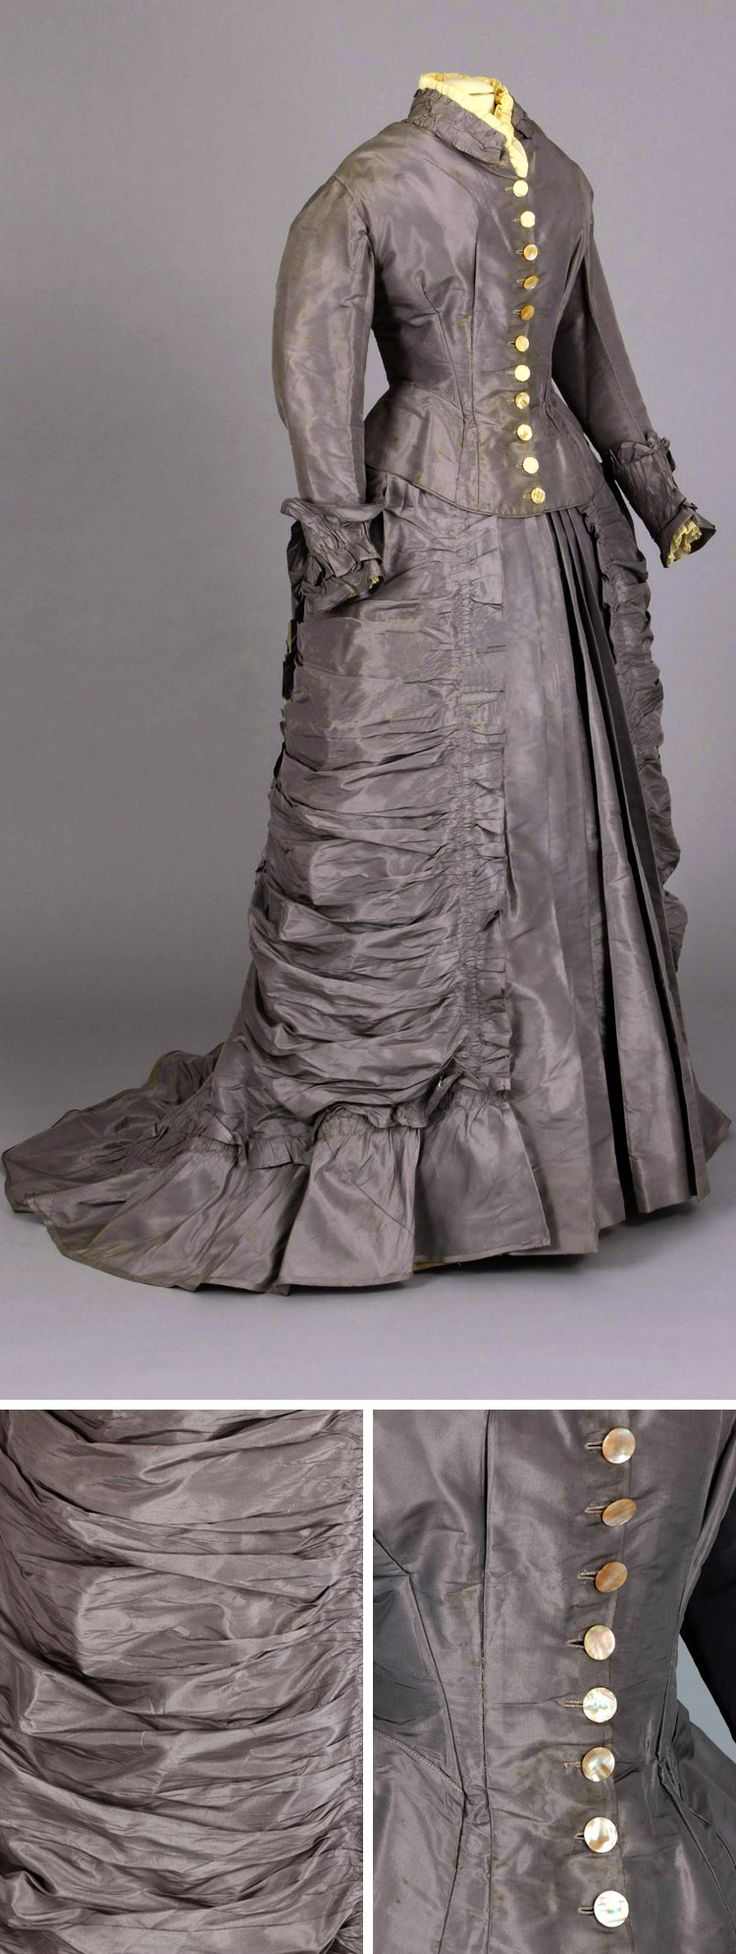 Wedding dress, 1875. Bodice has pointed peplum in back and 11 mother of pearl buttons down center front. Skirt features ruched panels that extend from the hips down the sides and a bustle accented with a bow. Chester County (PA) Historical Society